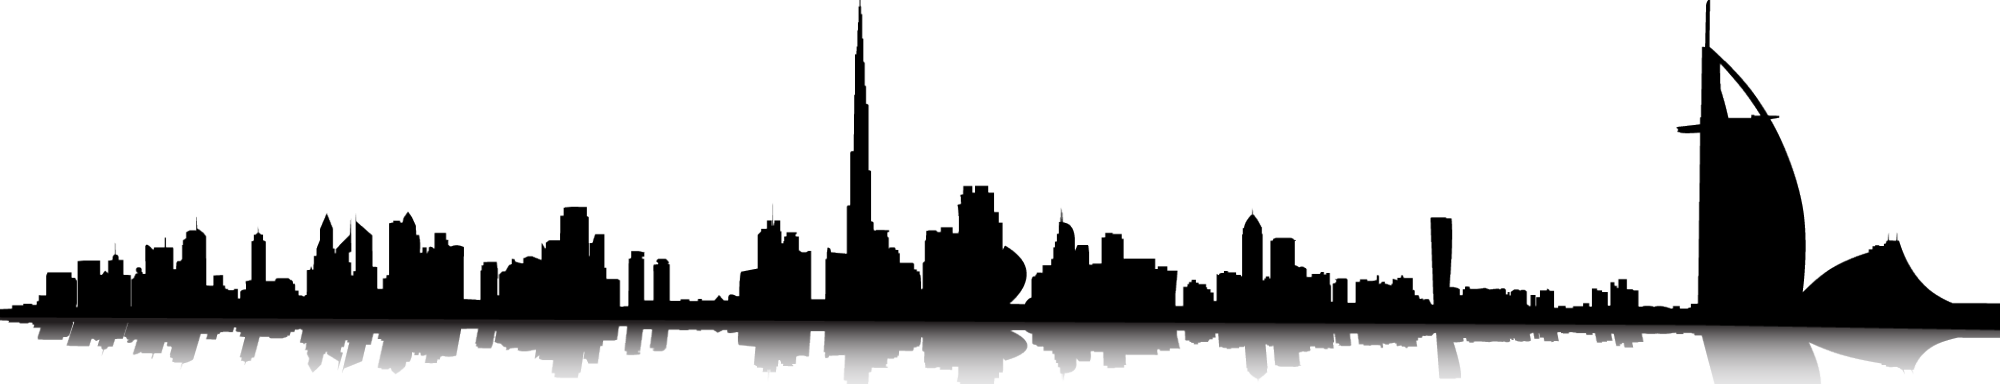 Skyline clipart chicago downtown. New york city clip